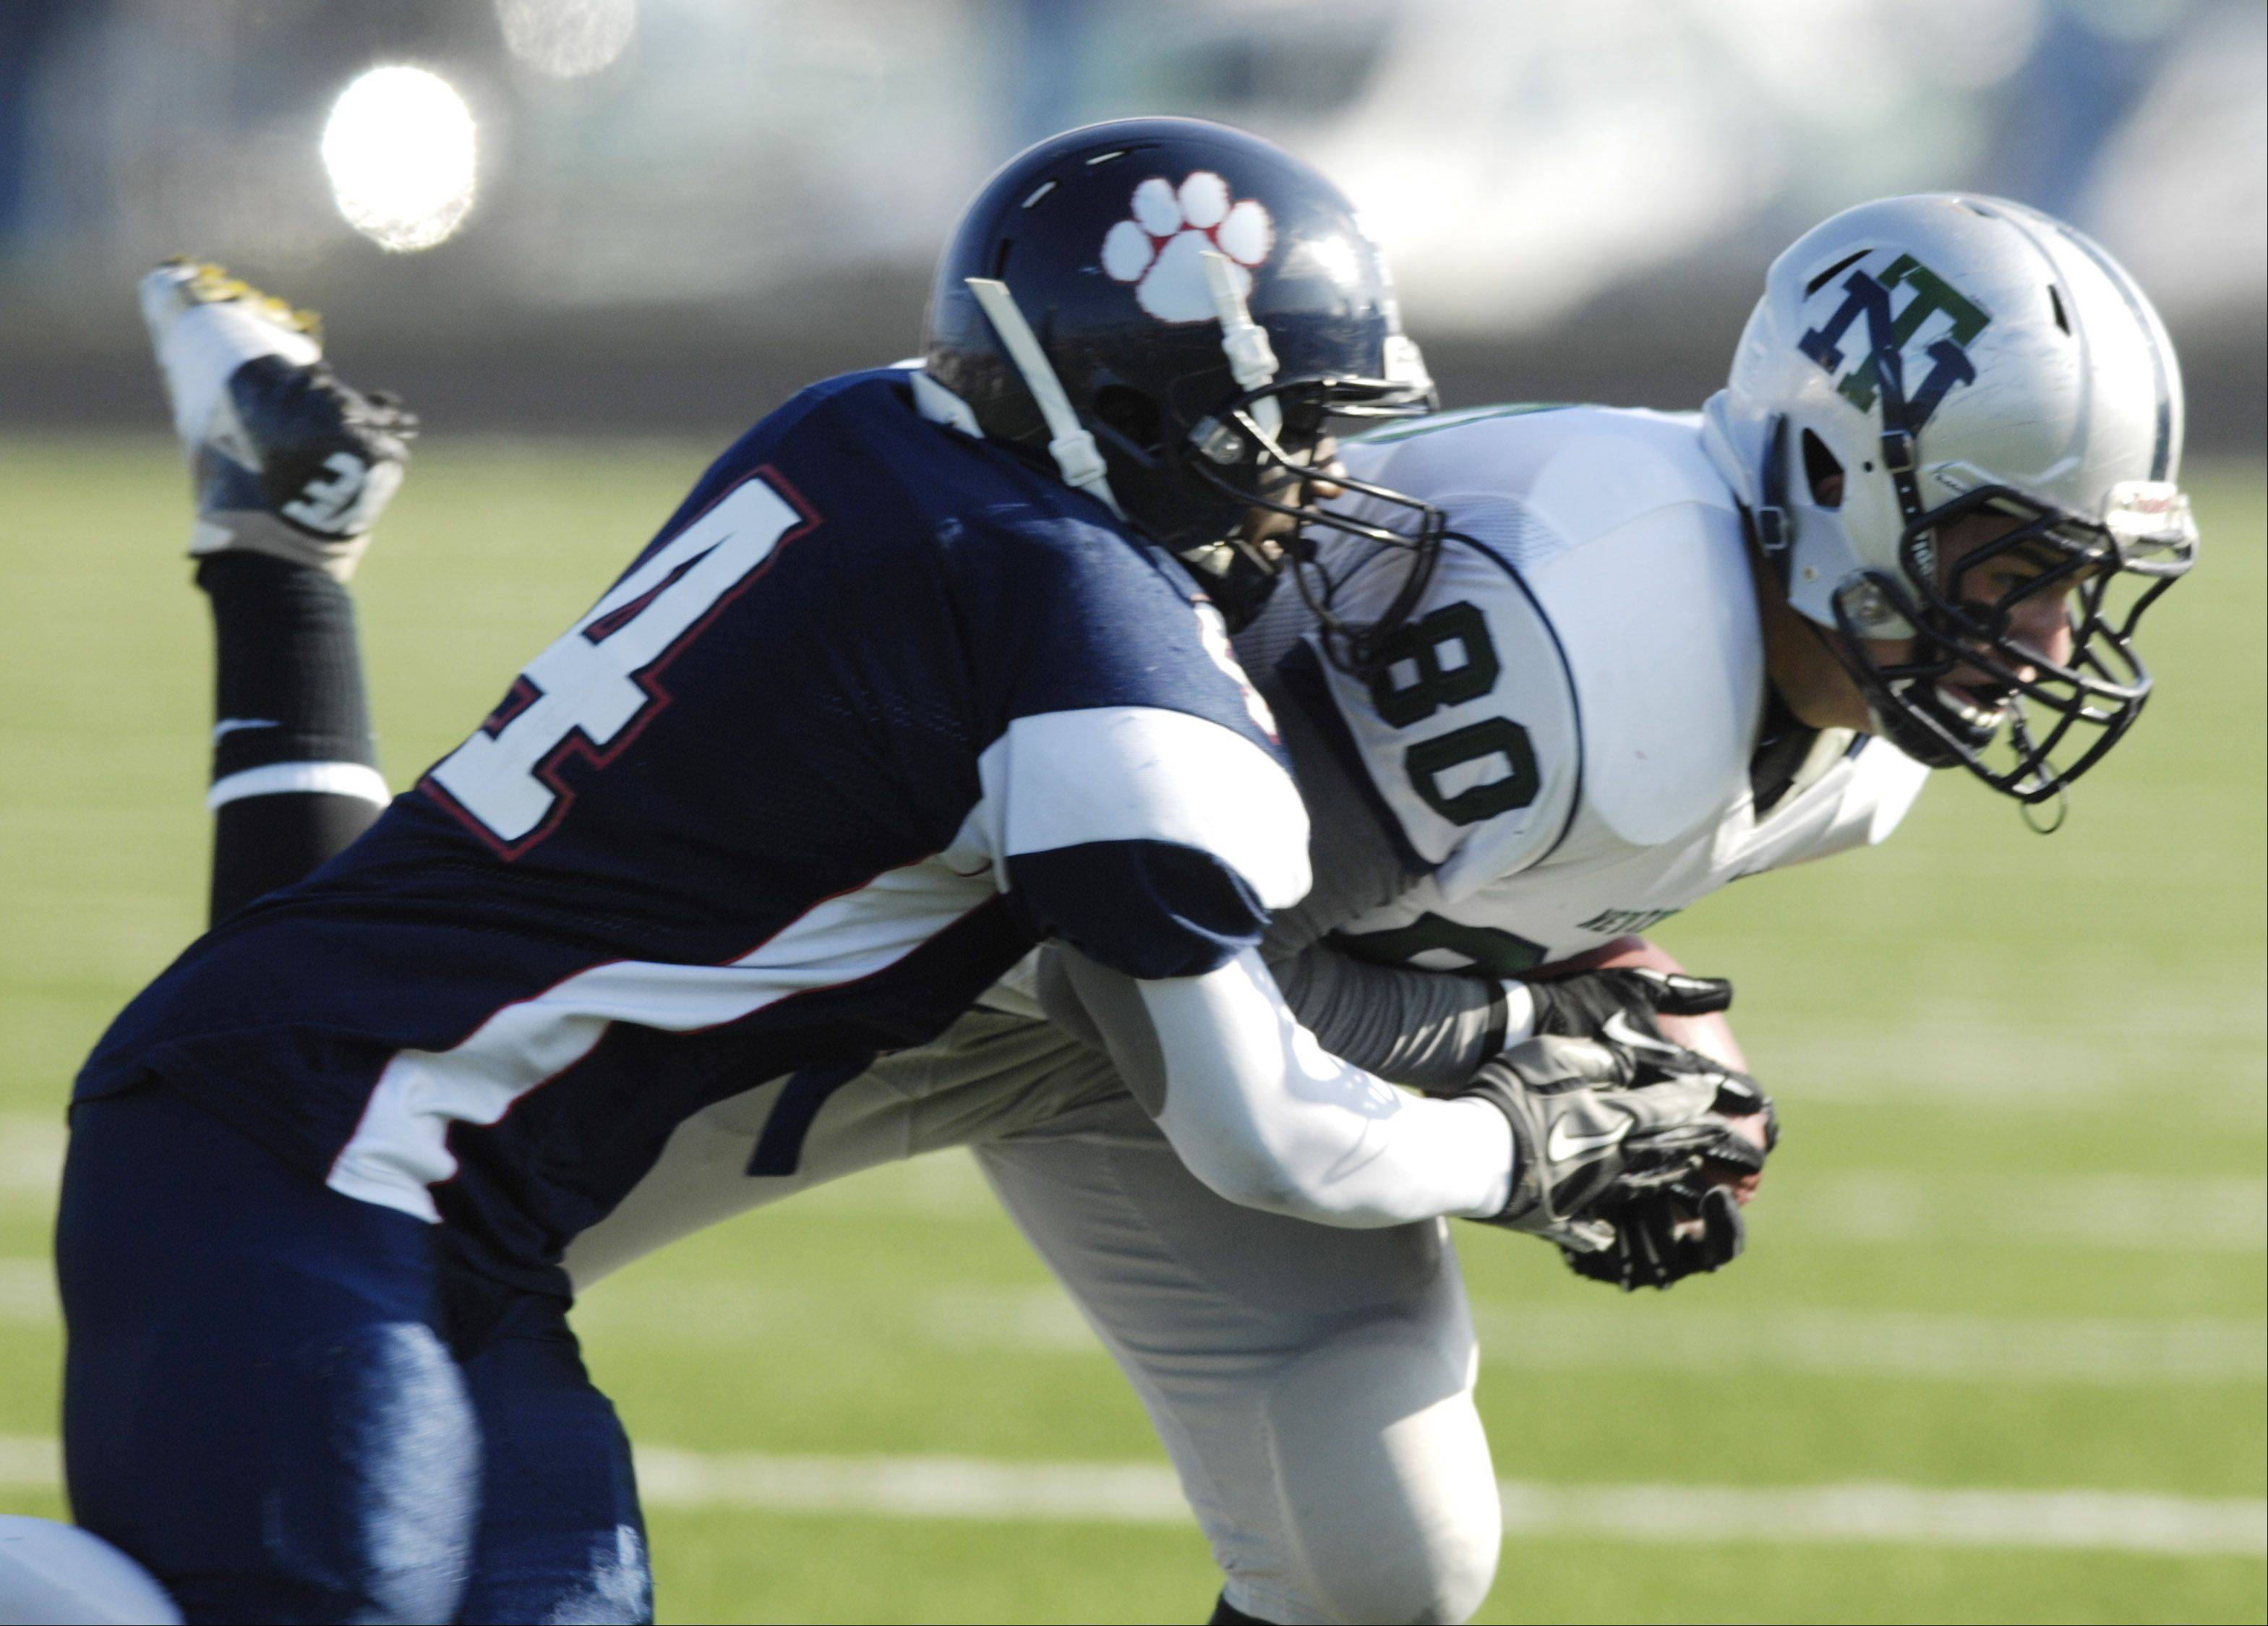 Conant's during Saturday's game.Fred Wortham tackles New Trier's Grant Klenovich during Saturday's game.